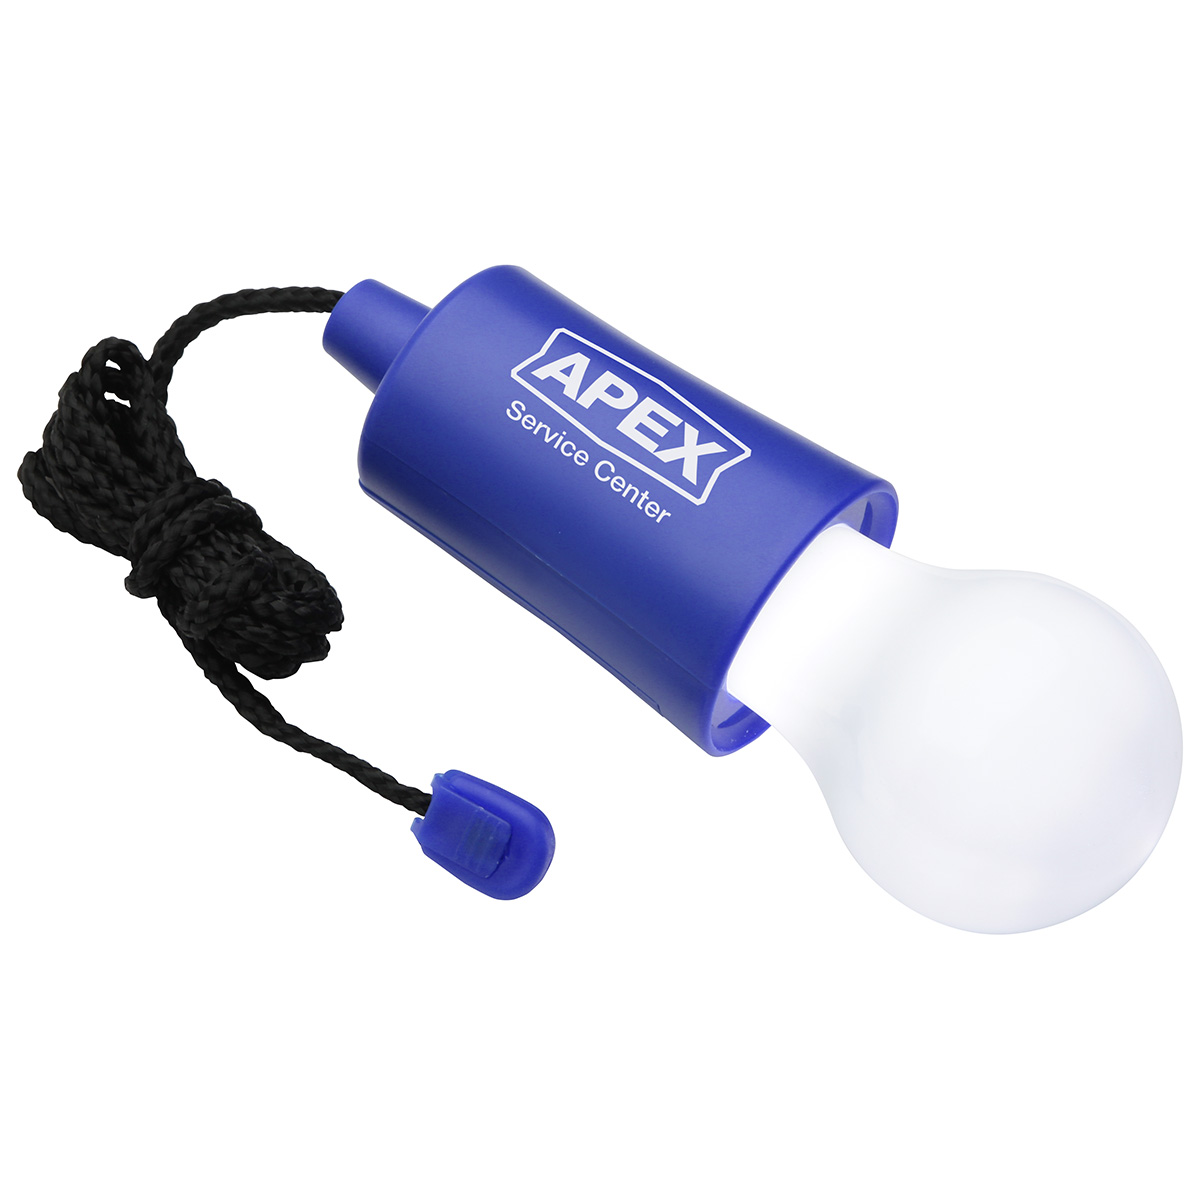 Hang Tight LED Ready Light, WLT-HT16, 1 Colour Imprint